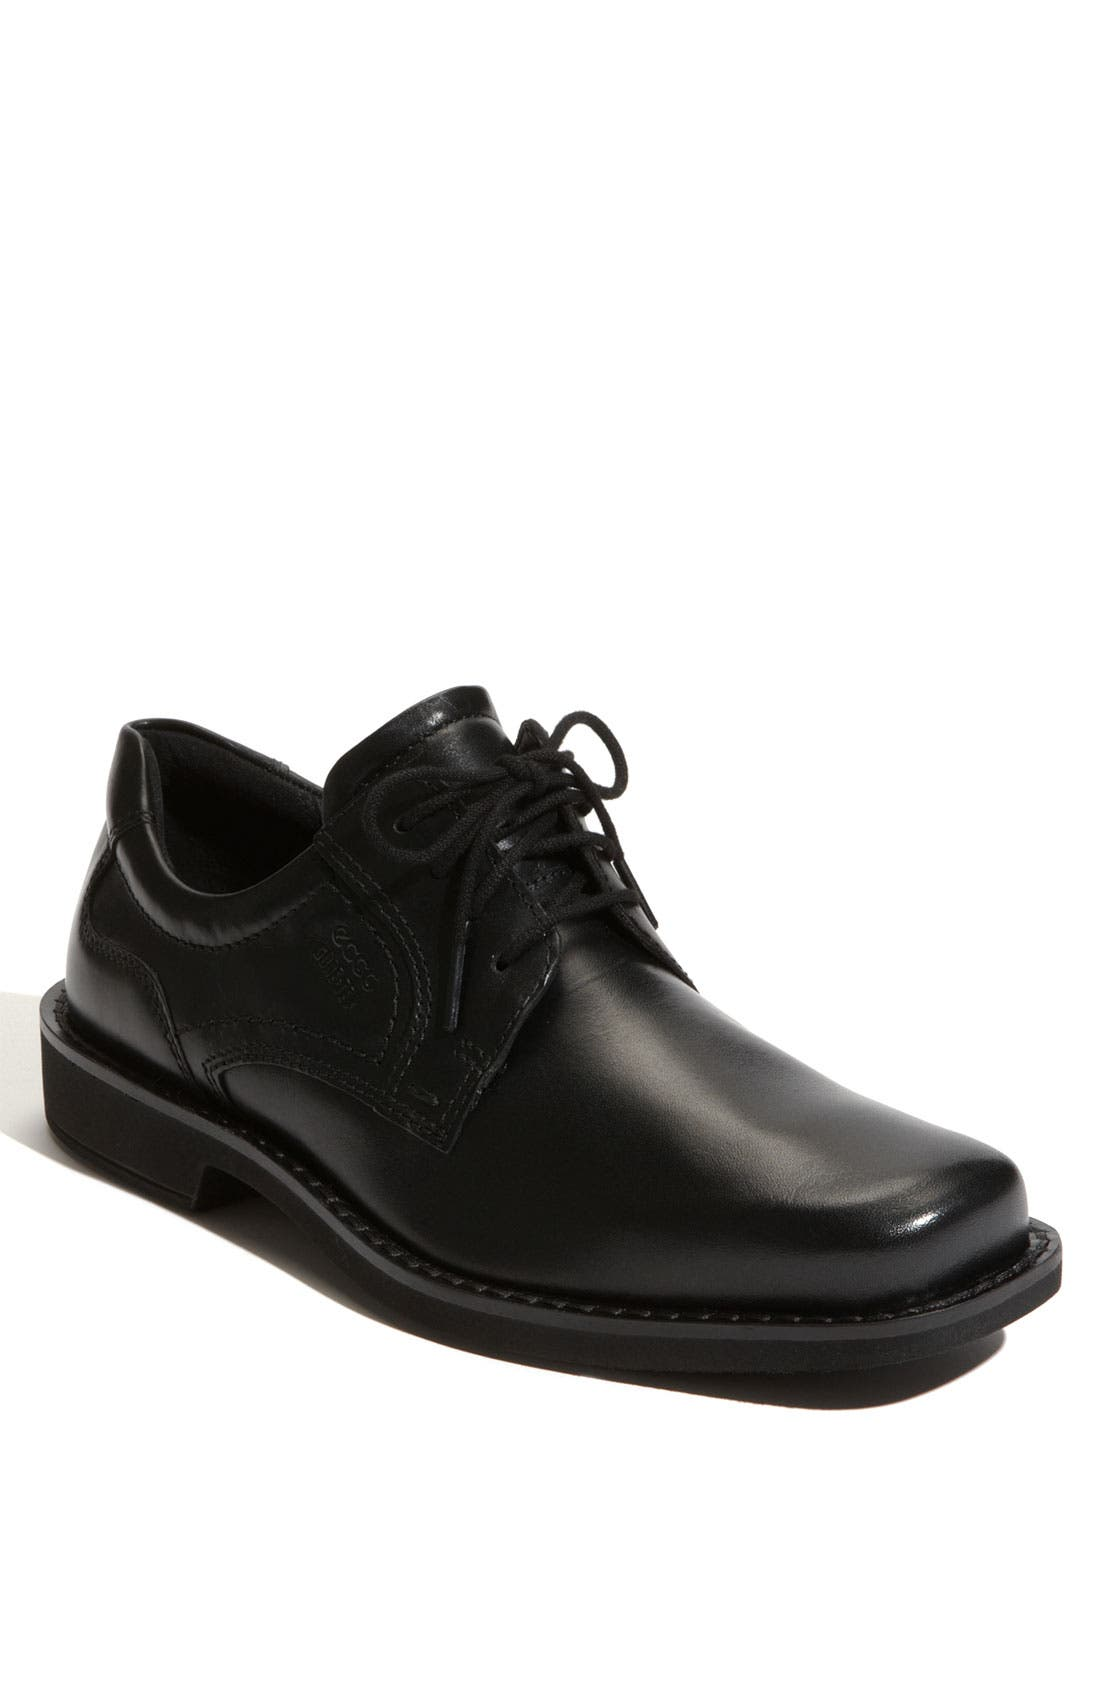 Alternate Image 1 Selected - ECCO 'Seattle' Oxford